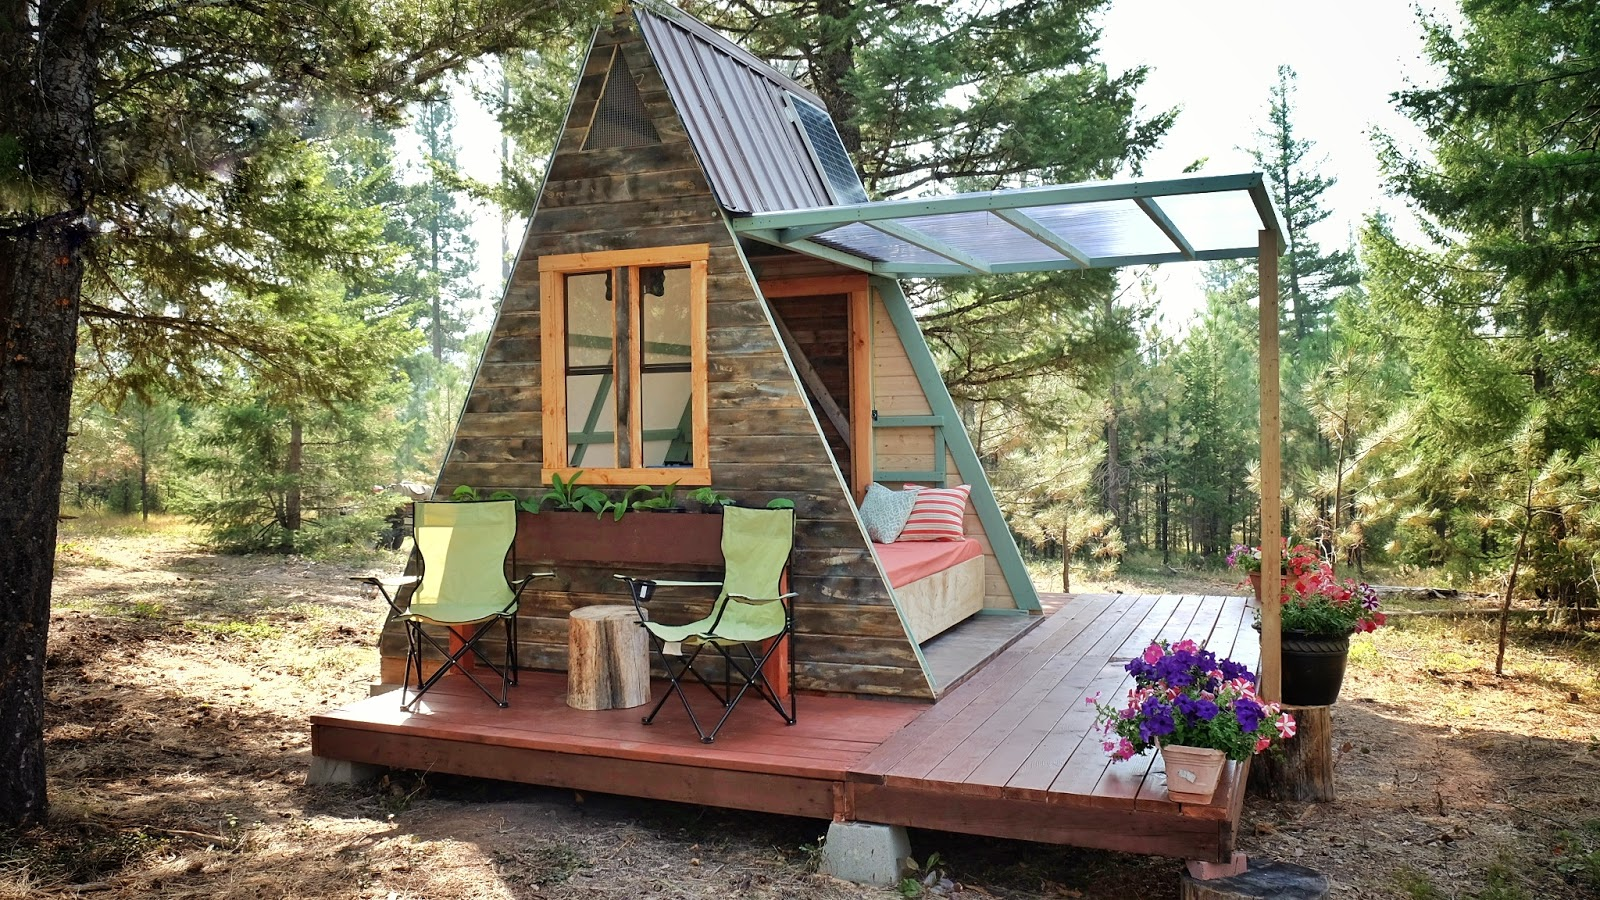 Tiny house town a frame cabin that cost just 700 to build for A frame cost